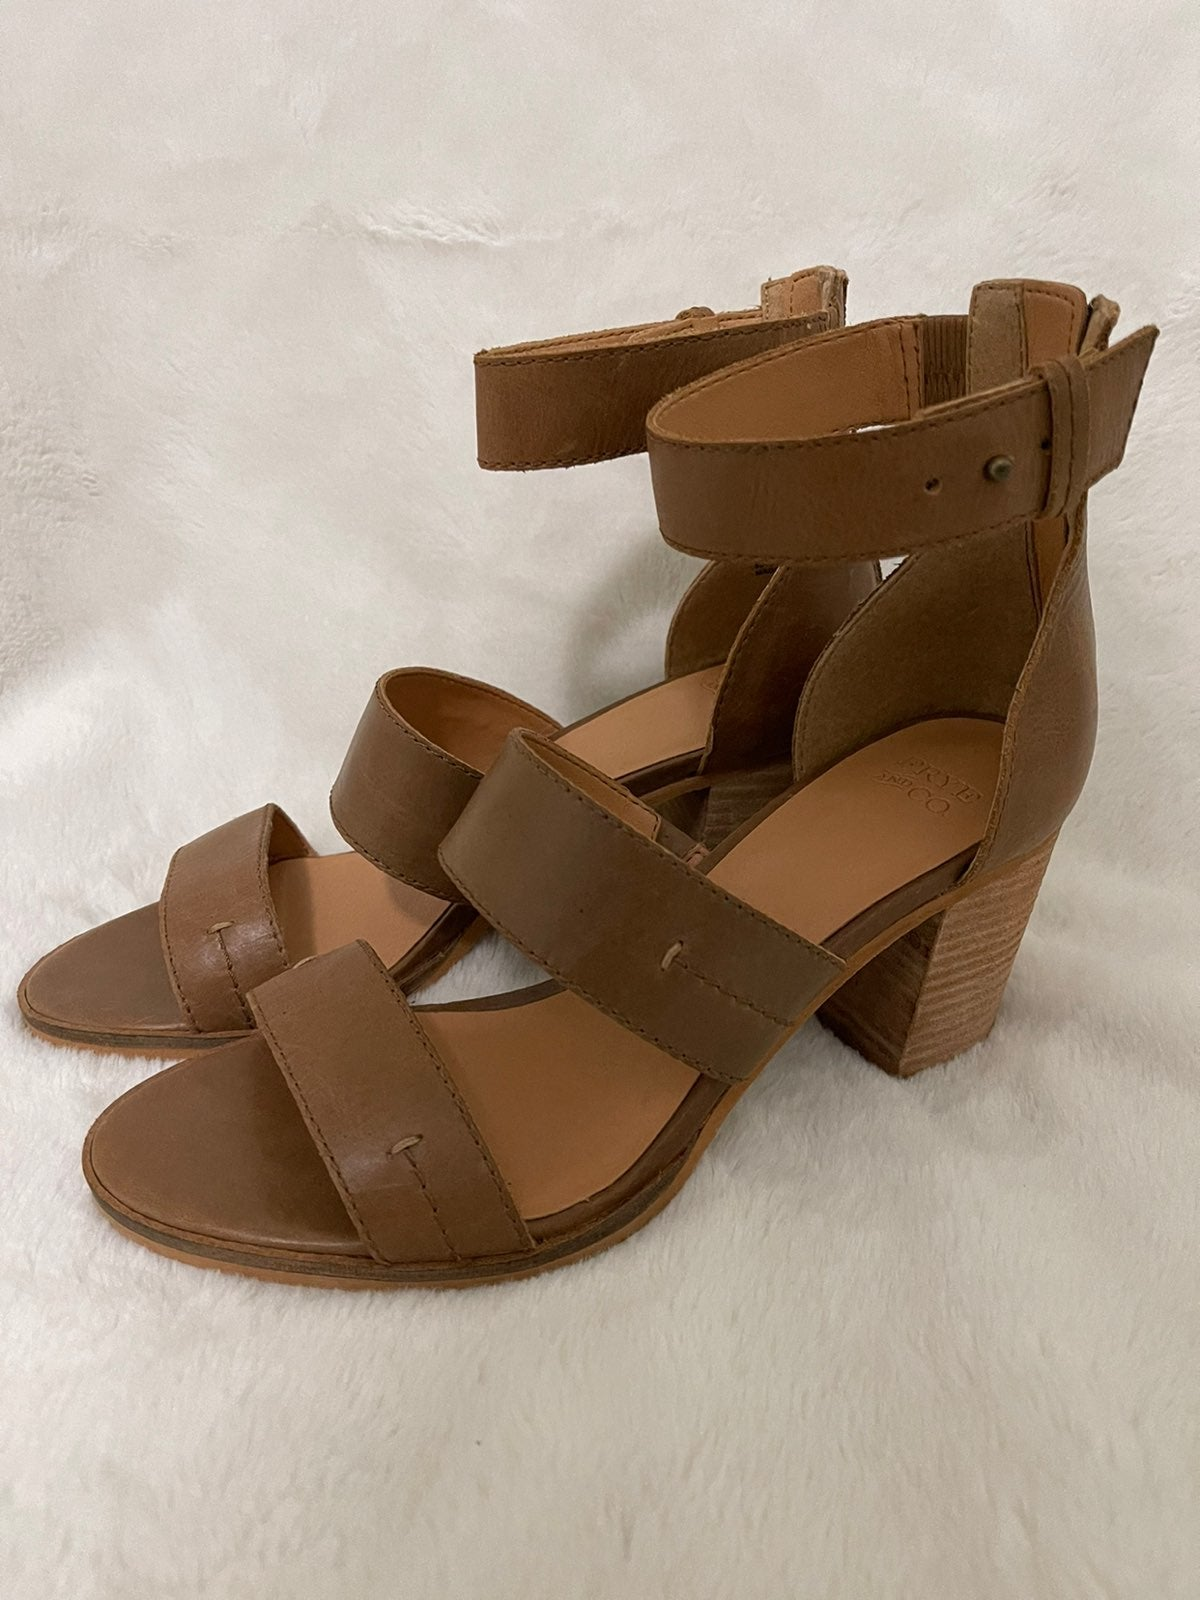 Frye & Co Bryn Stitch Sandal NEW Sz 8.5